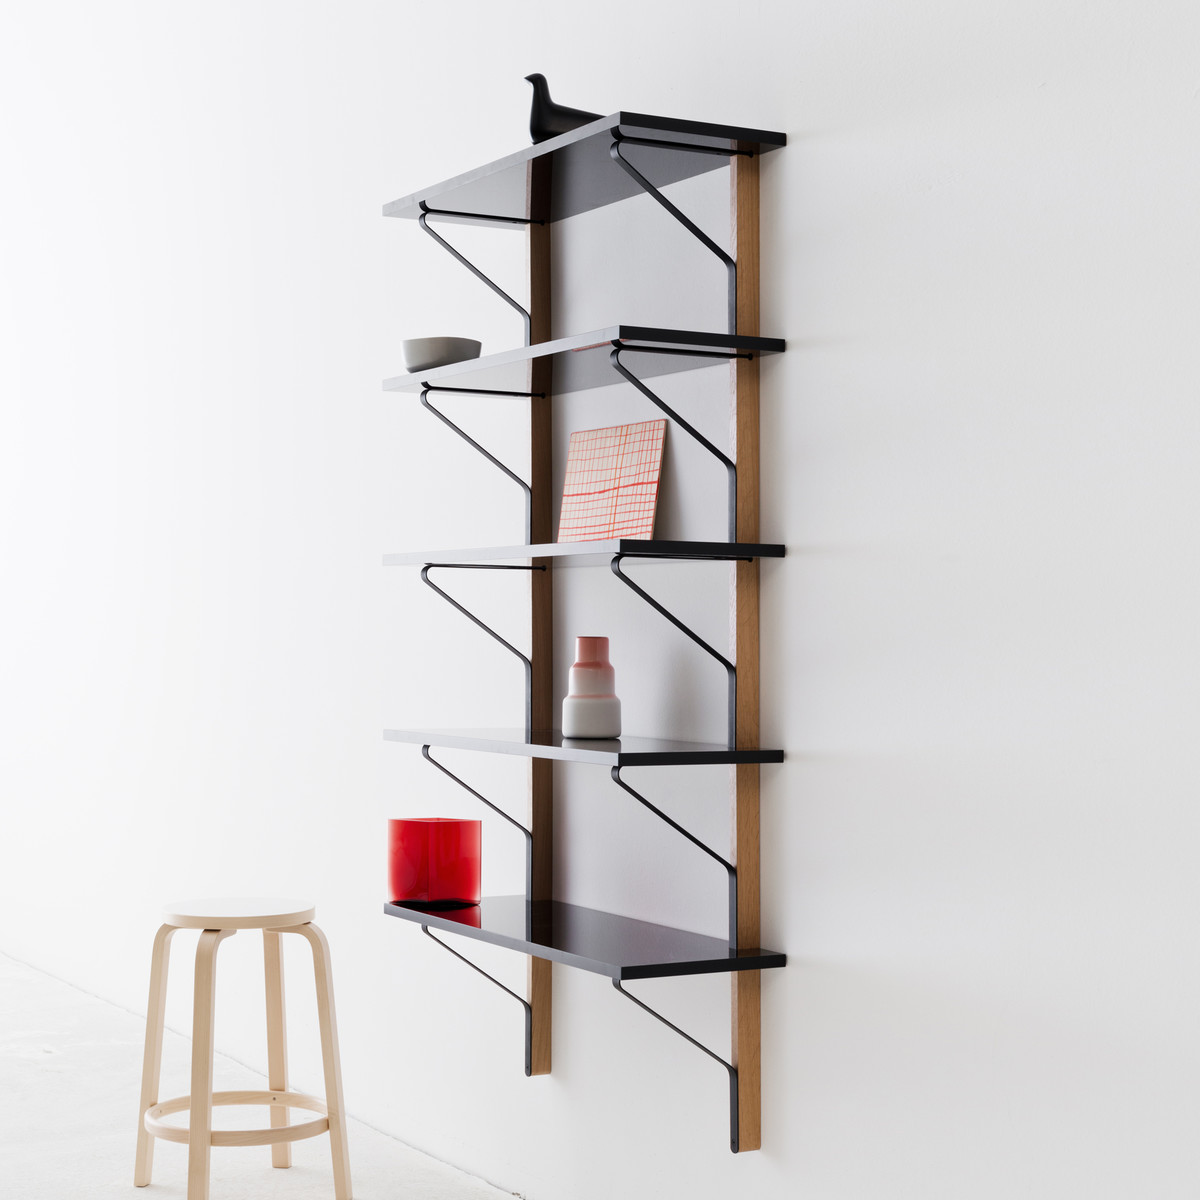 kaari wandregal 100 x 35 cm von artek. Black Bedroom Furniture Sets. Home Design Ideas